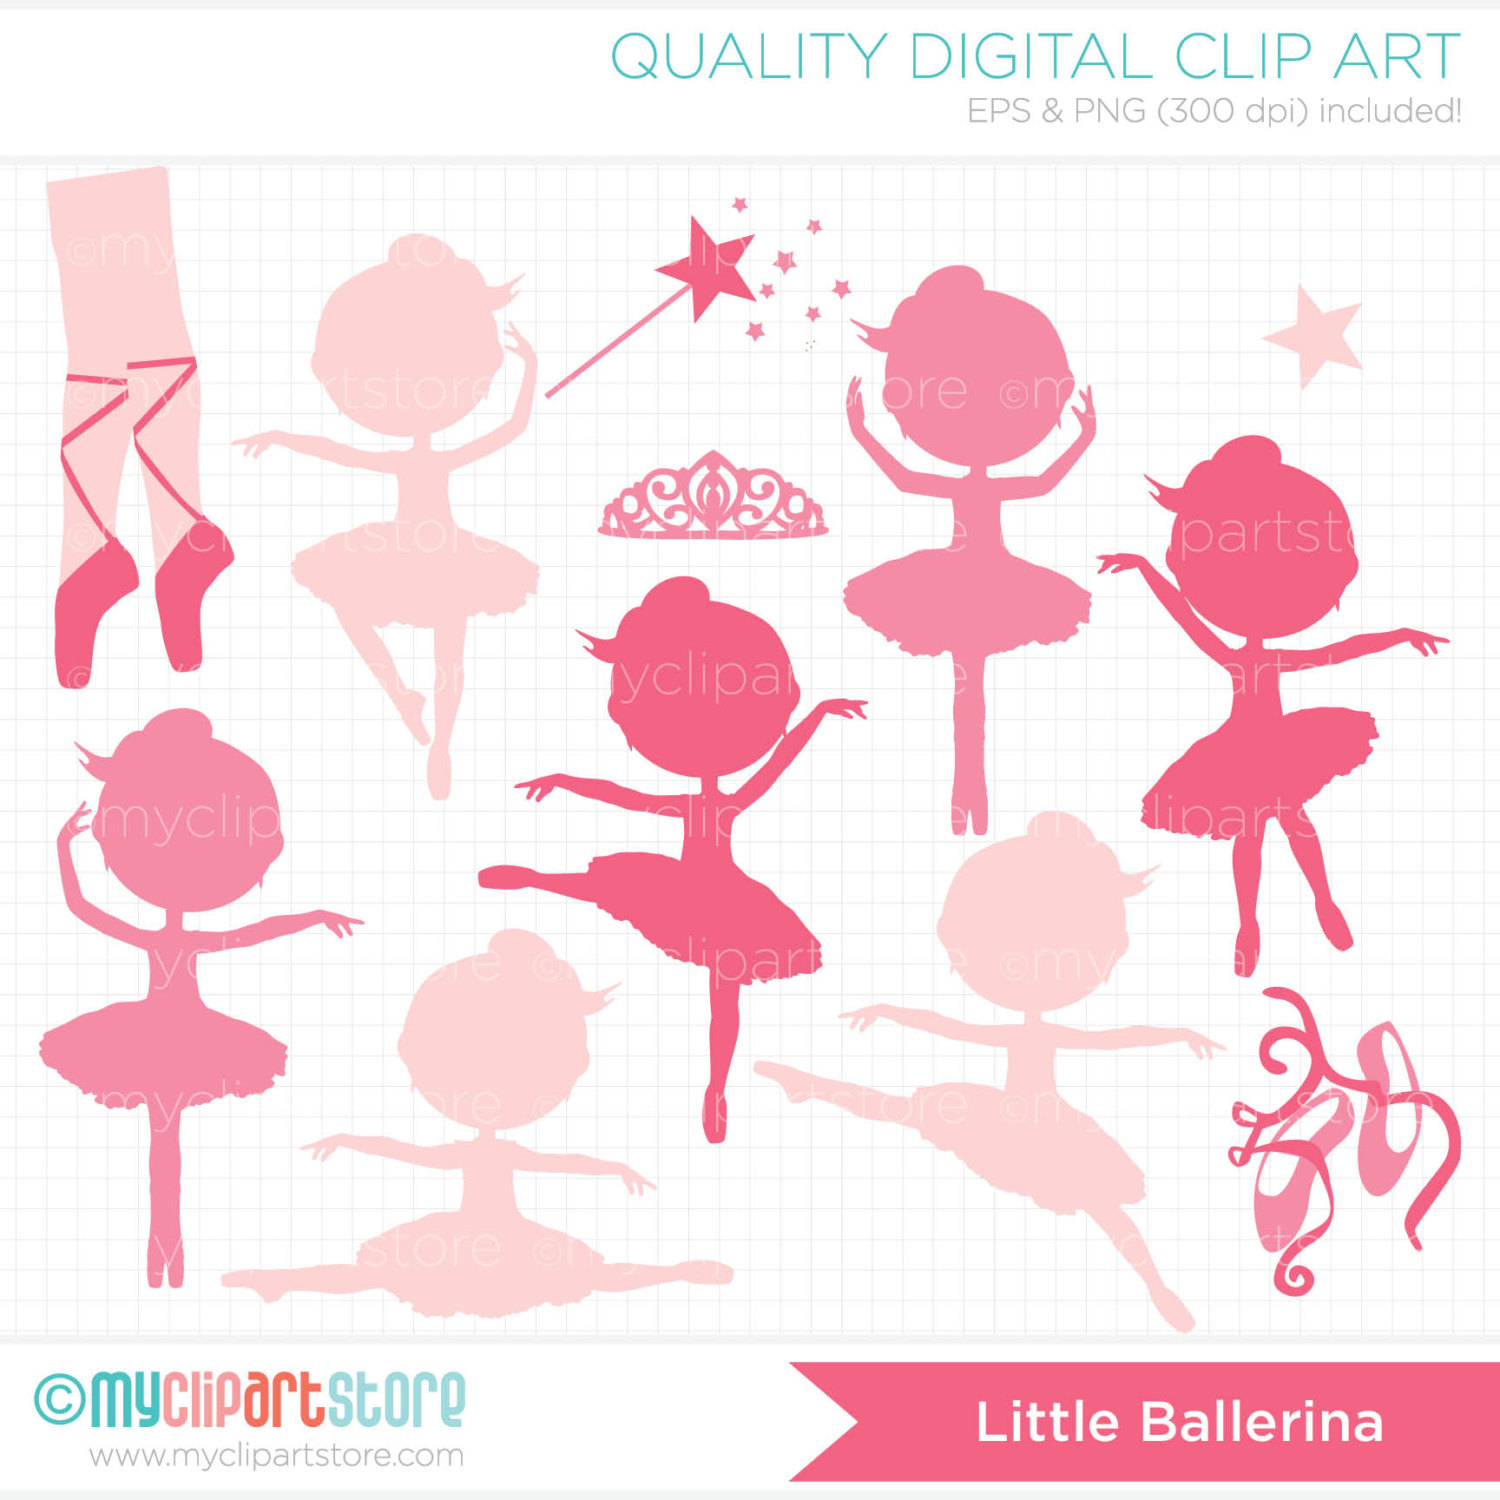 Little Ballerina Silhouette Clip Art   Digital By Myclipartstore